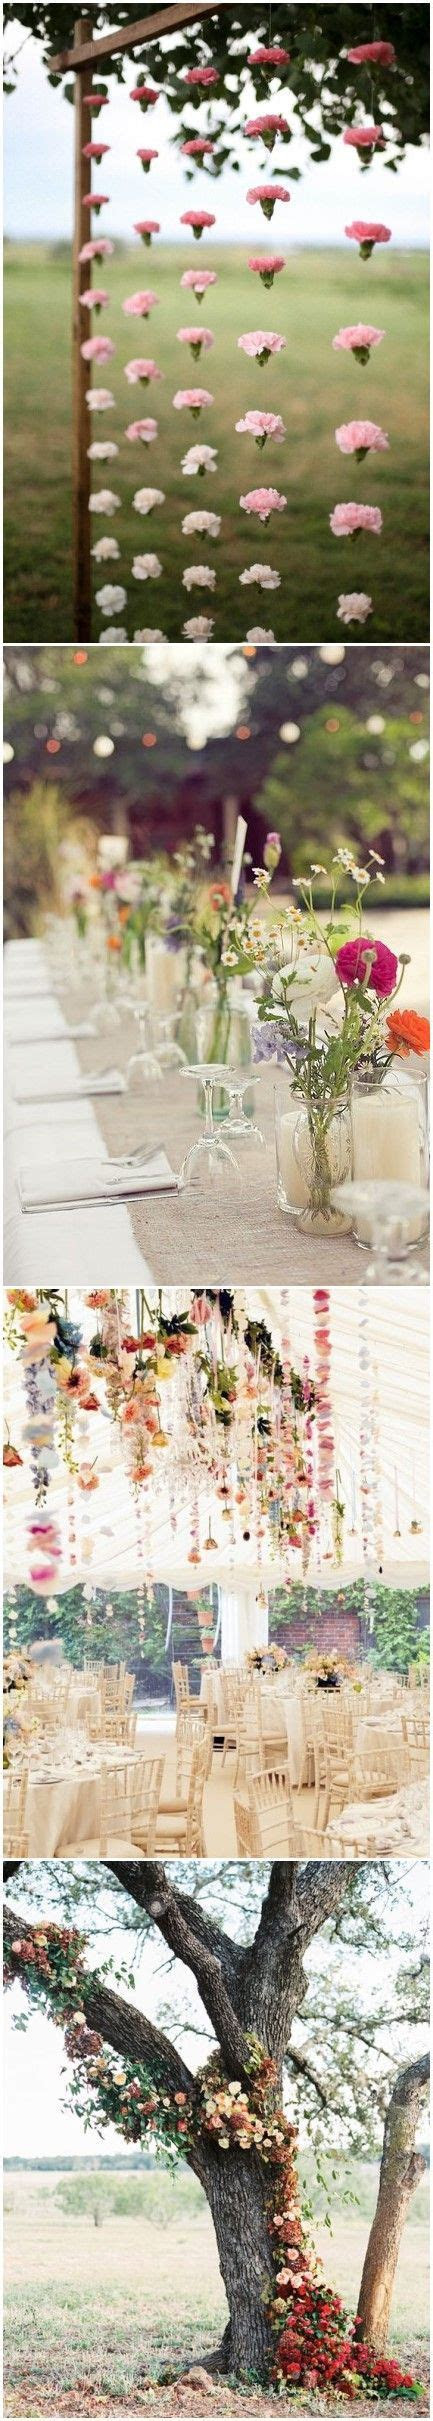 20  Gorgeous Boho Wedding Décor Ideas on Pinterest